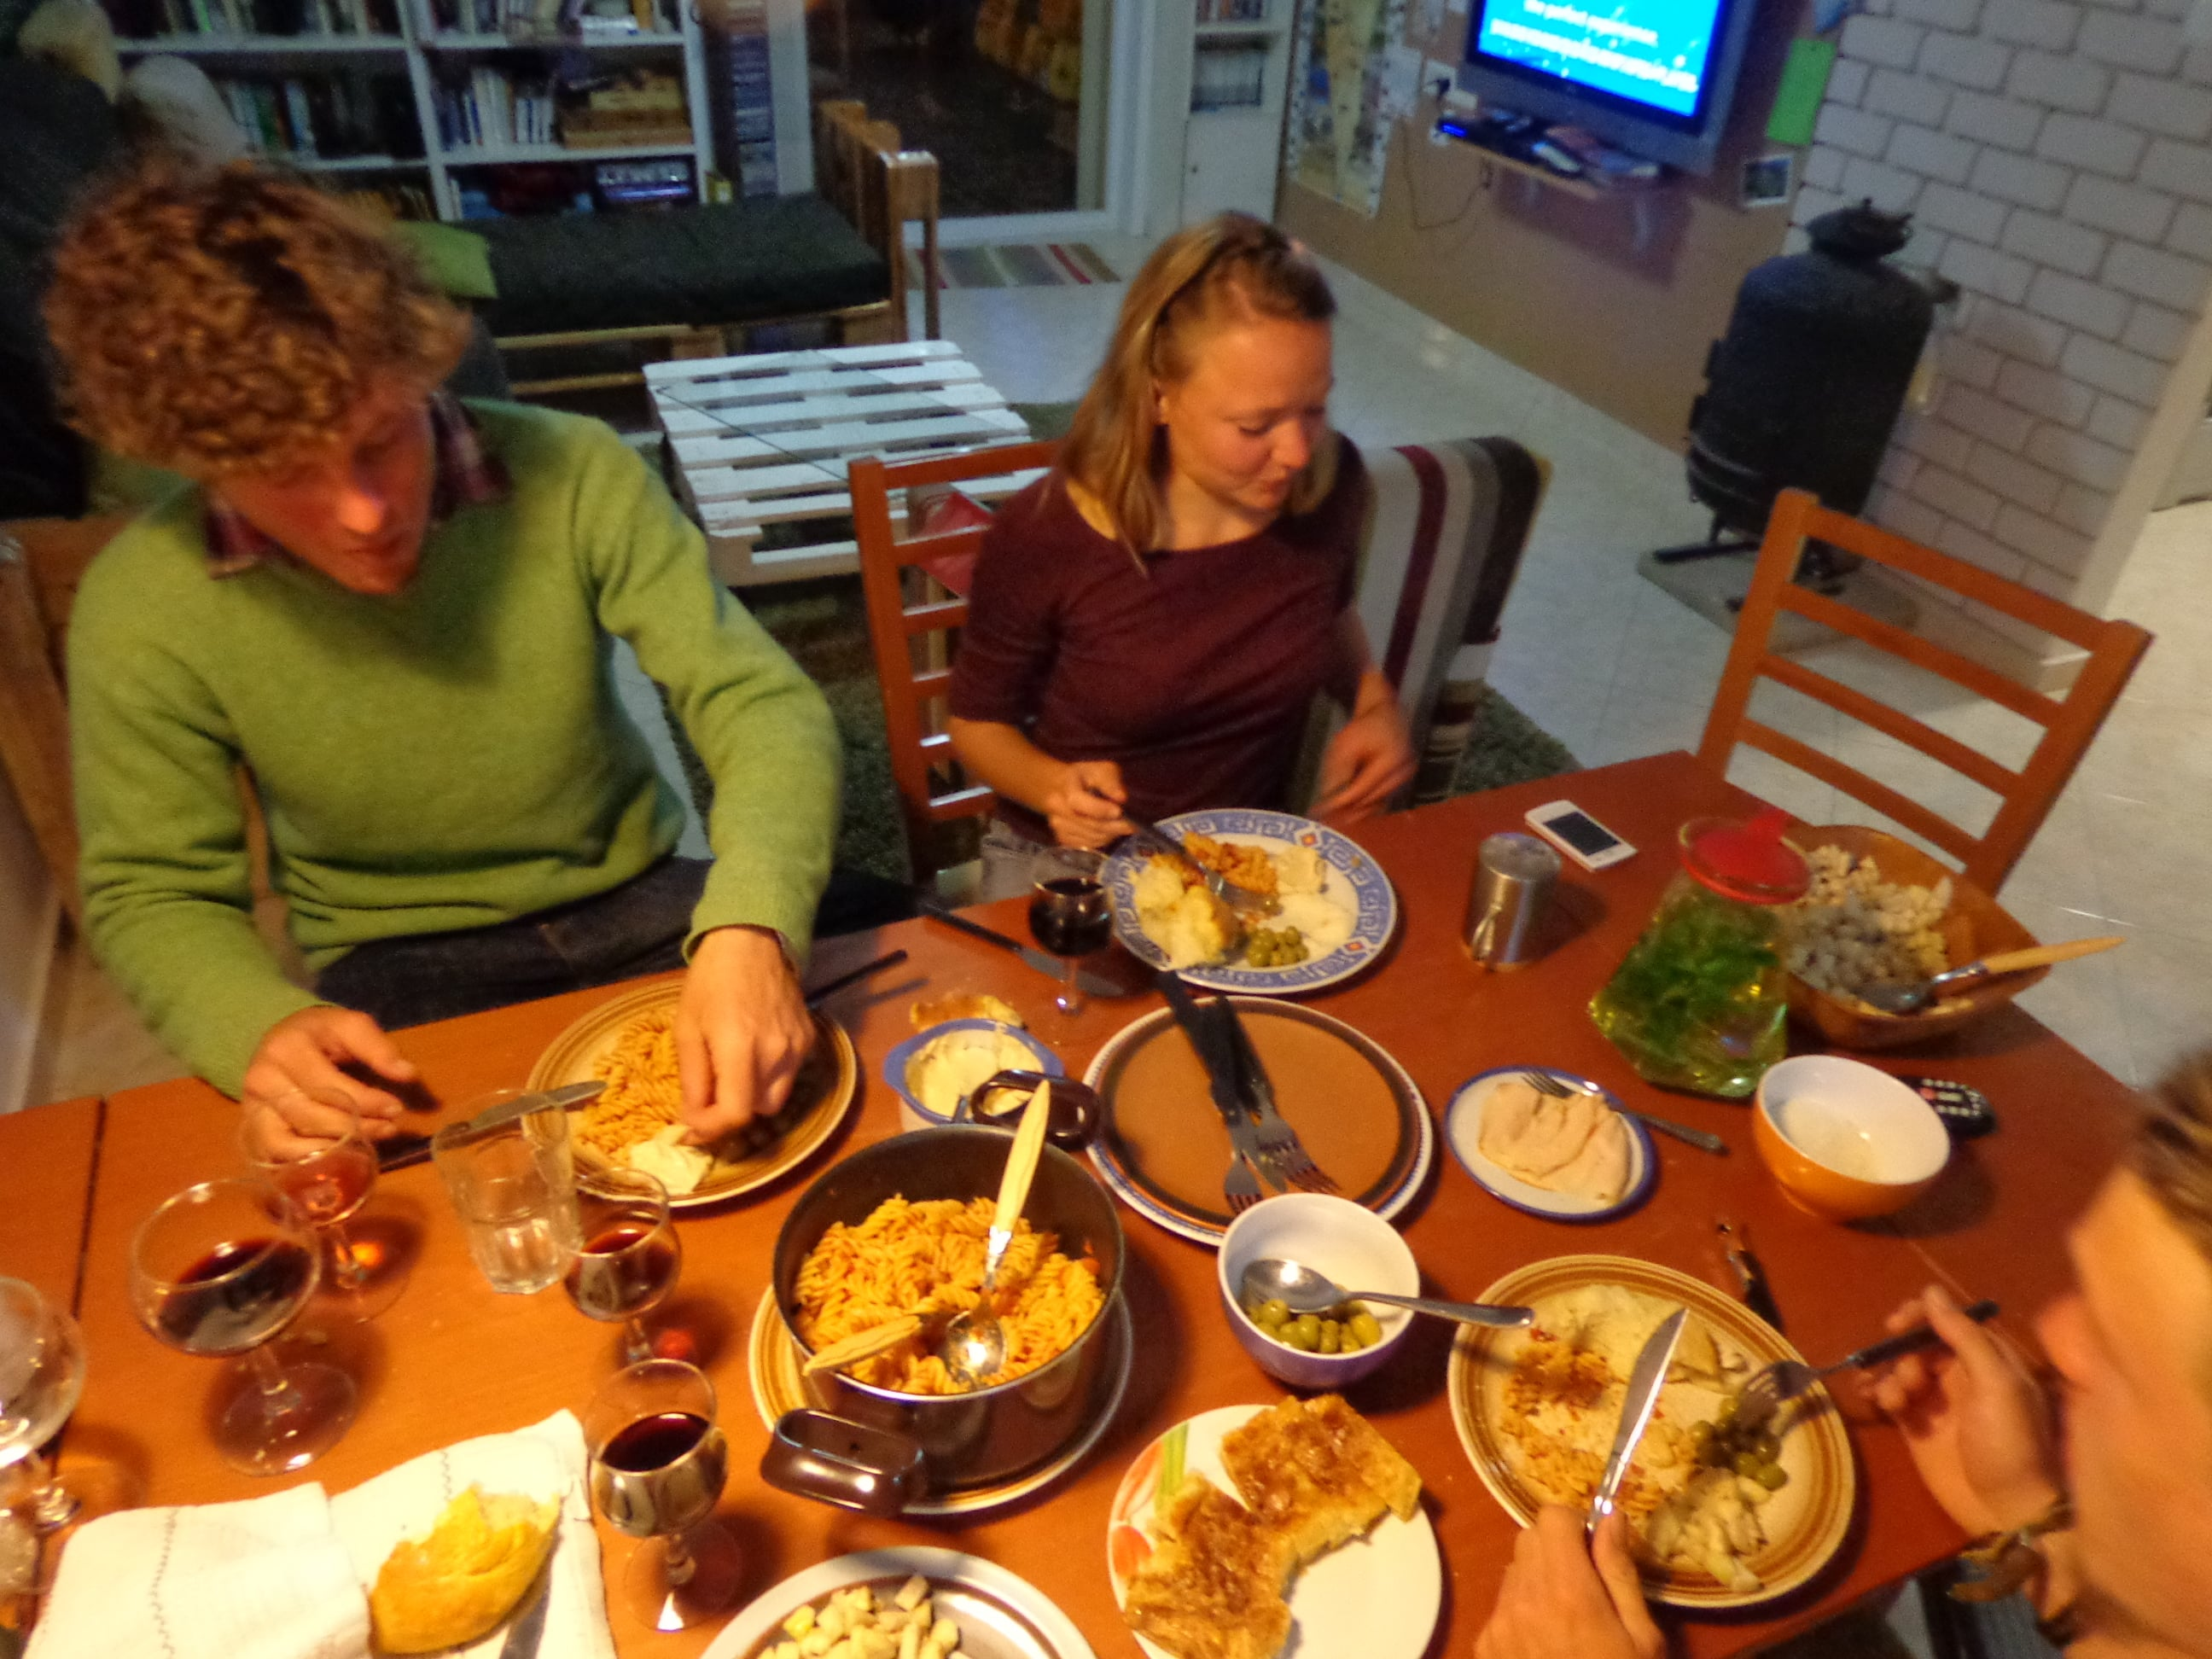 Shabbat dinner at hostel in Mitzpe Ramon in Israel